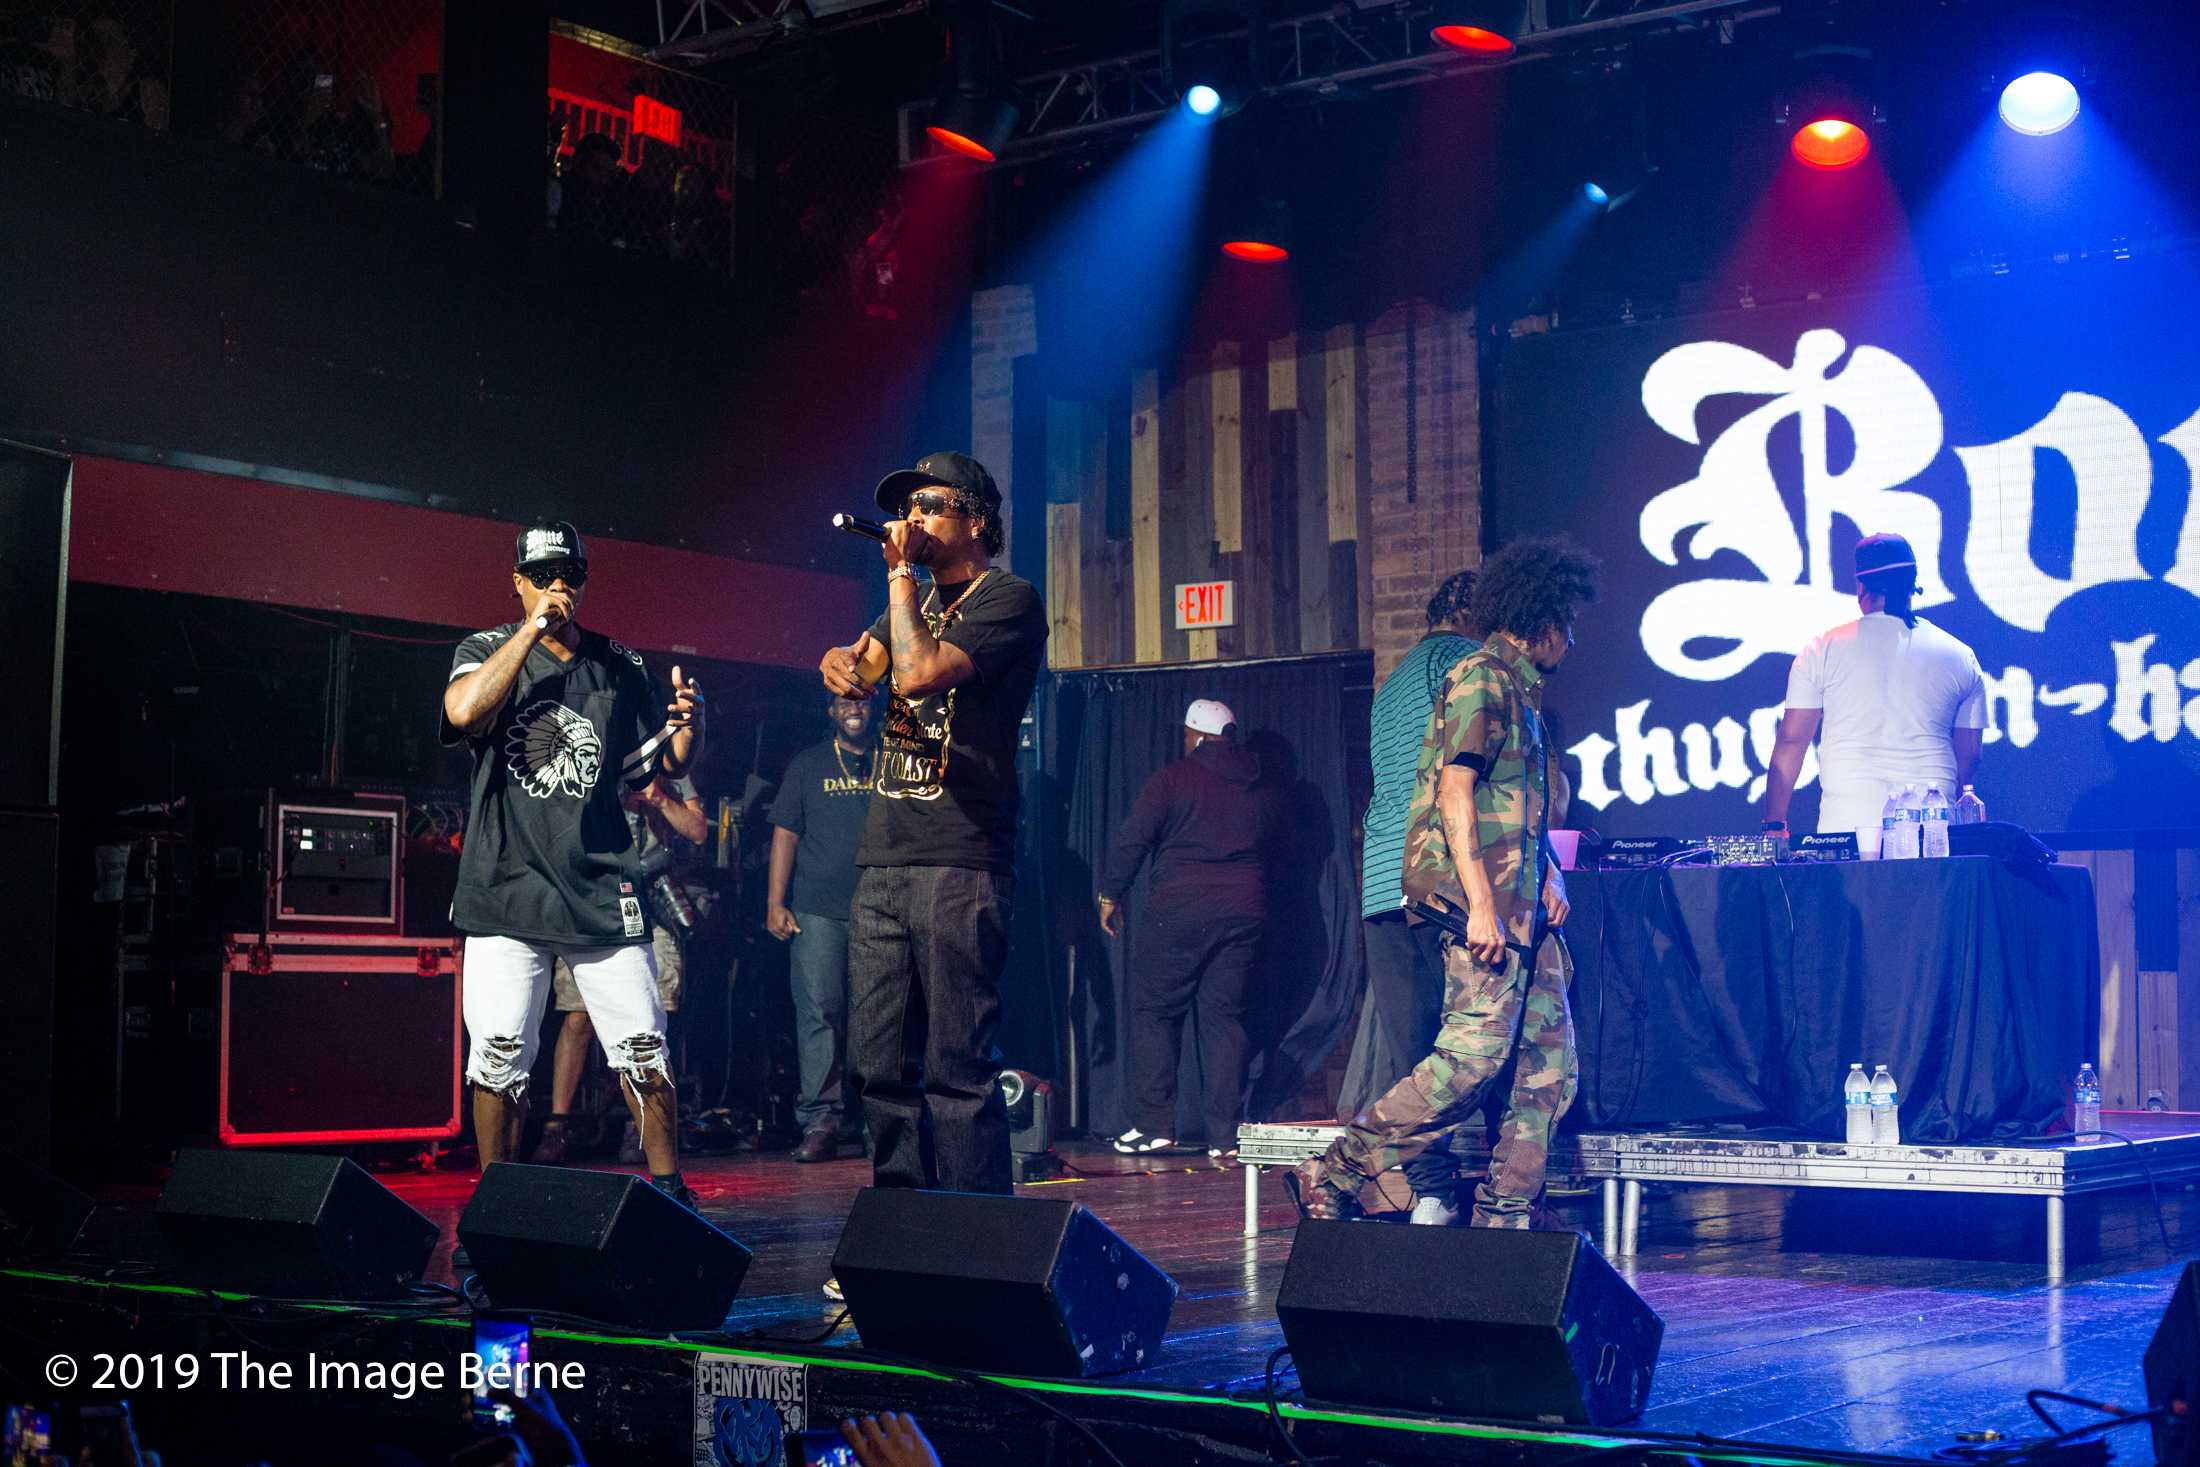 Krayzie Bone, Wish Bone, Flesh-N-Bone, Layzie Bone, and Bizzy Bone-025.jpg